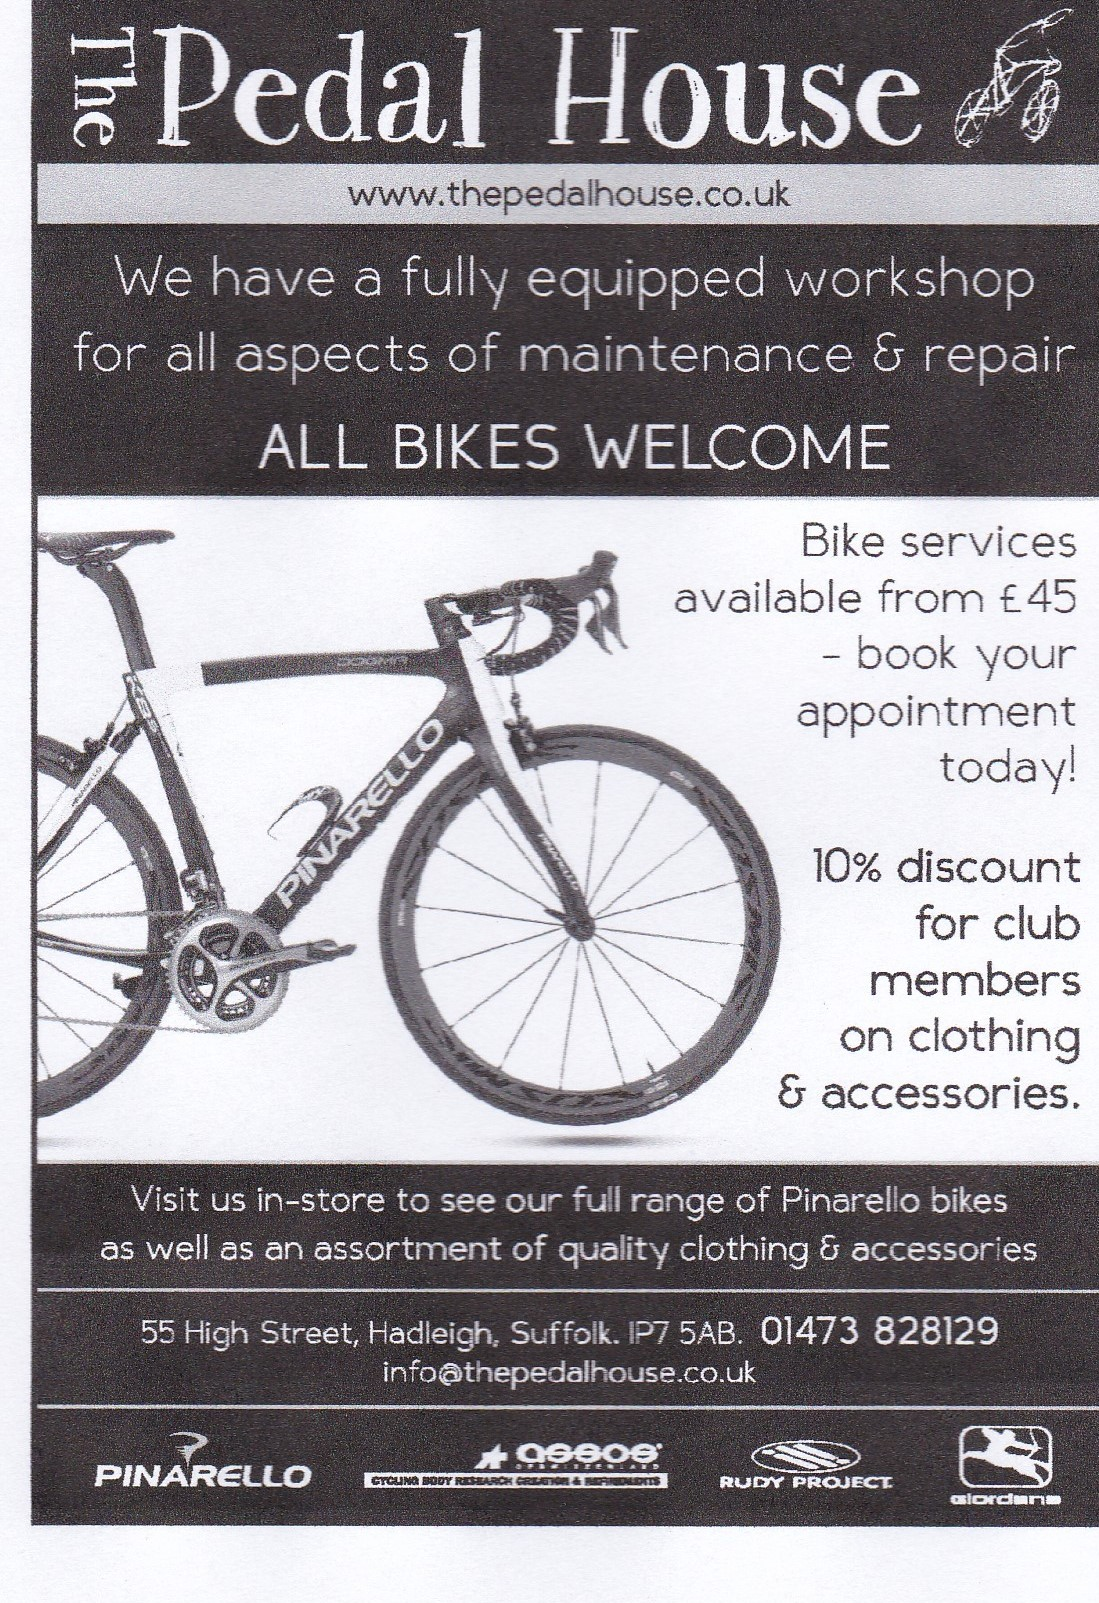 Call to book in for any servicing needs, plus there is a 10% discount on clothing and accessories for all BBC members. -